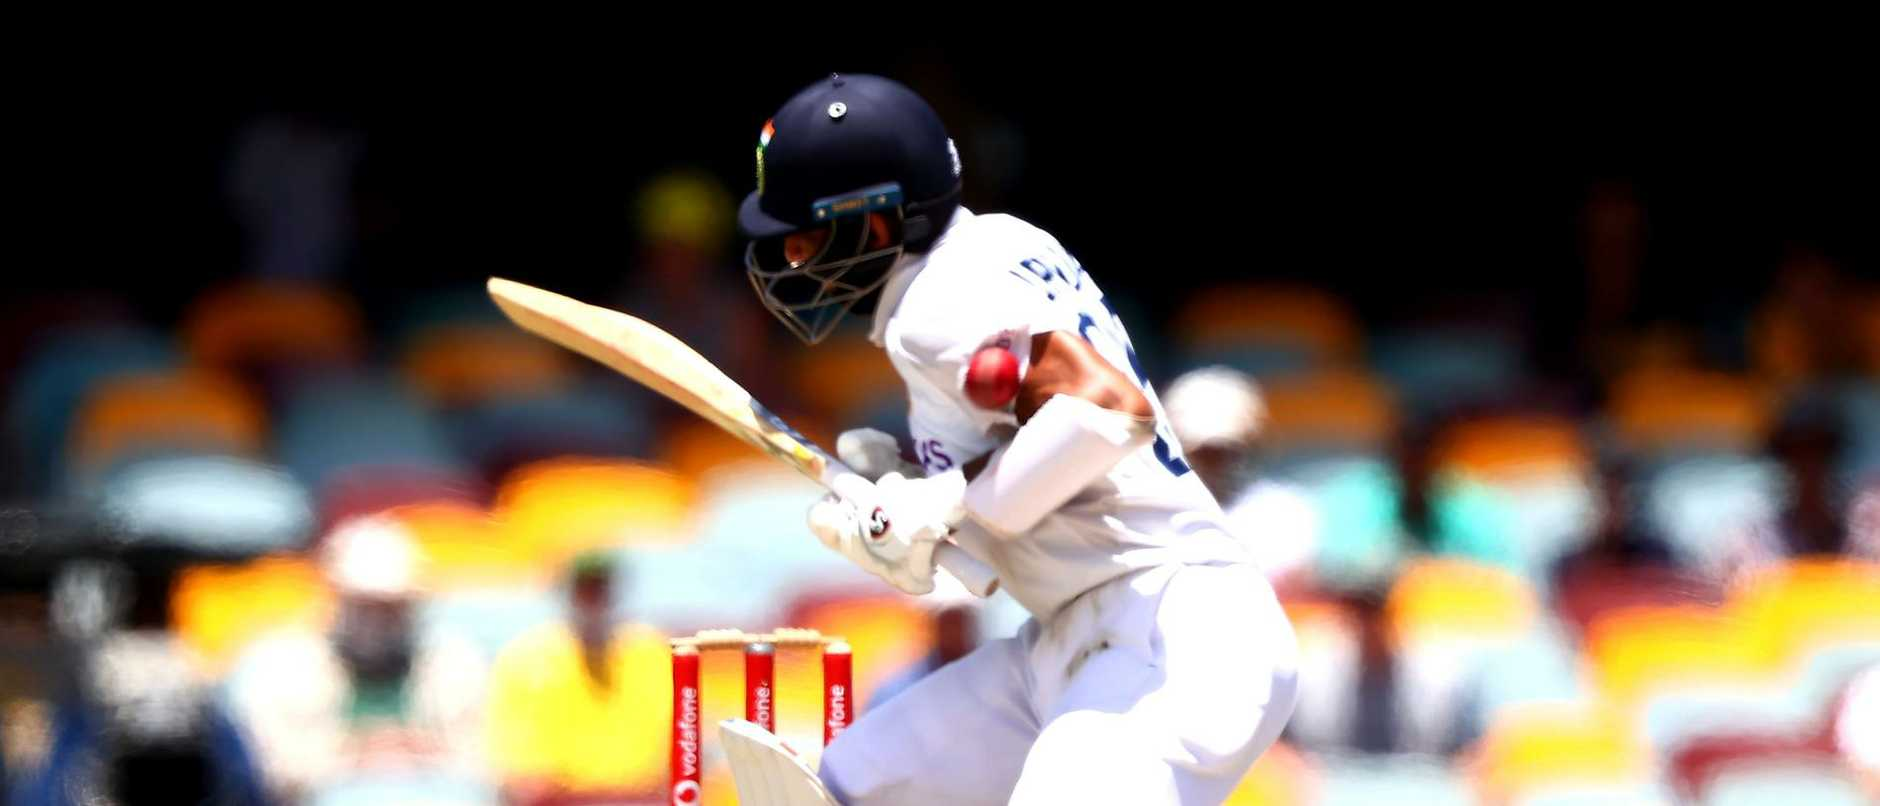 He was hit on the hand and shoulder, drilled in the ribs and dropped by a bouncer that struck his helmet in one of the most courageous innings of all time.